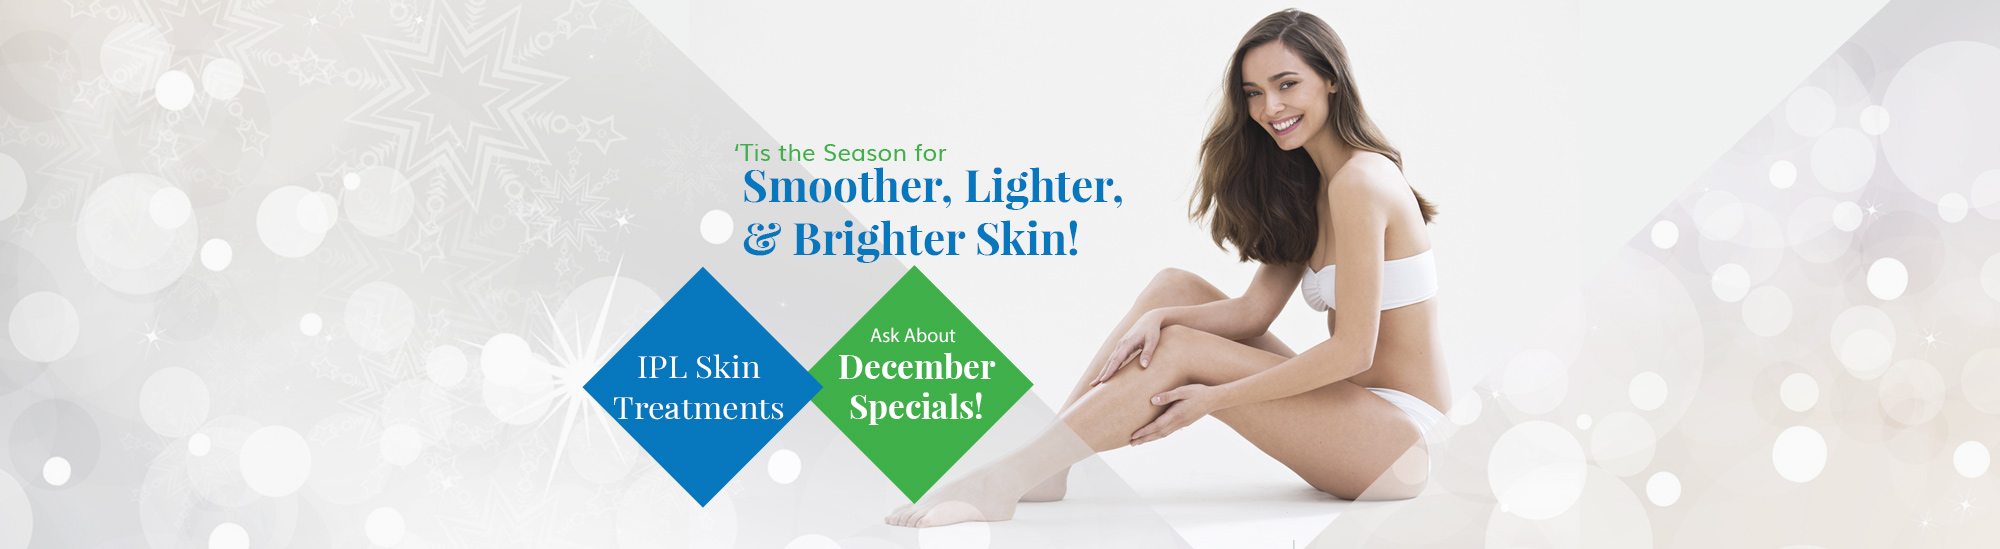 Ask about IPL Skin Treatment specials during December at NuYou Weight Loss and More.